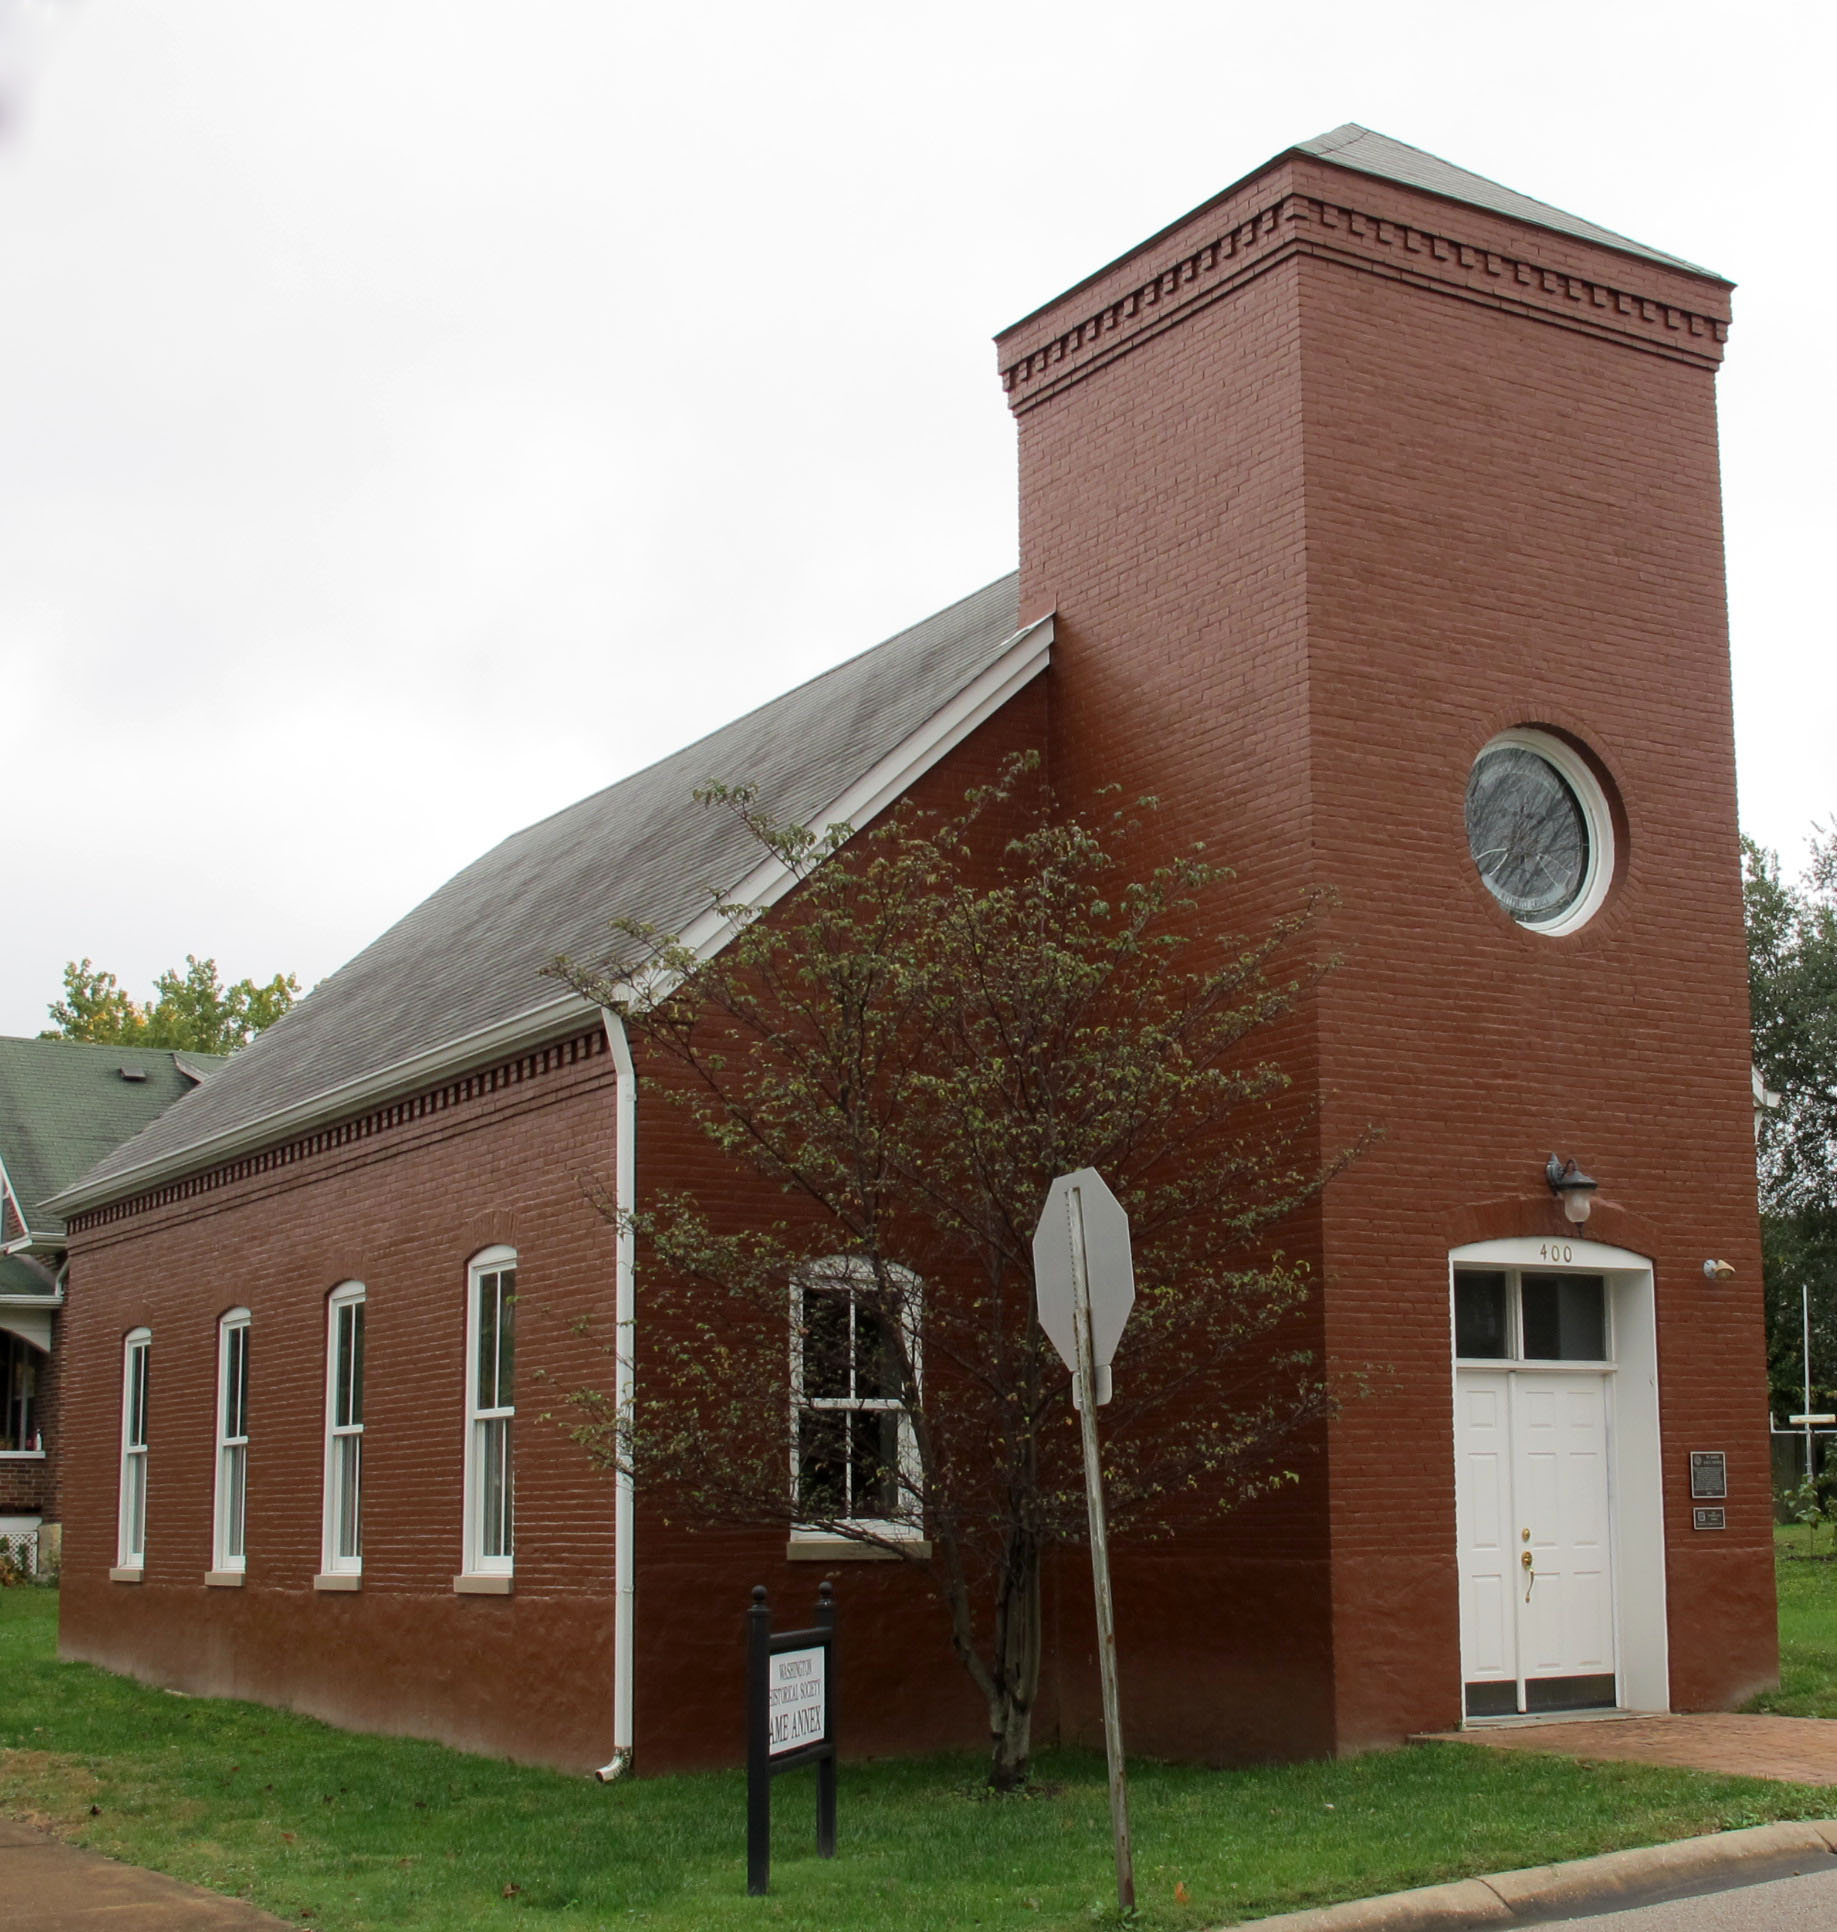 St. John's African Methodist Episcopal (AME) Church at Walnut and Fourth Streets. Built in 1891, it was rehabilitated as an archive for Franklin County Court records.